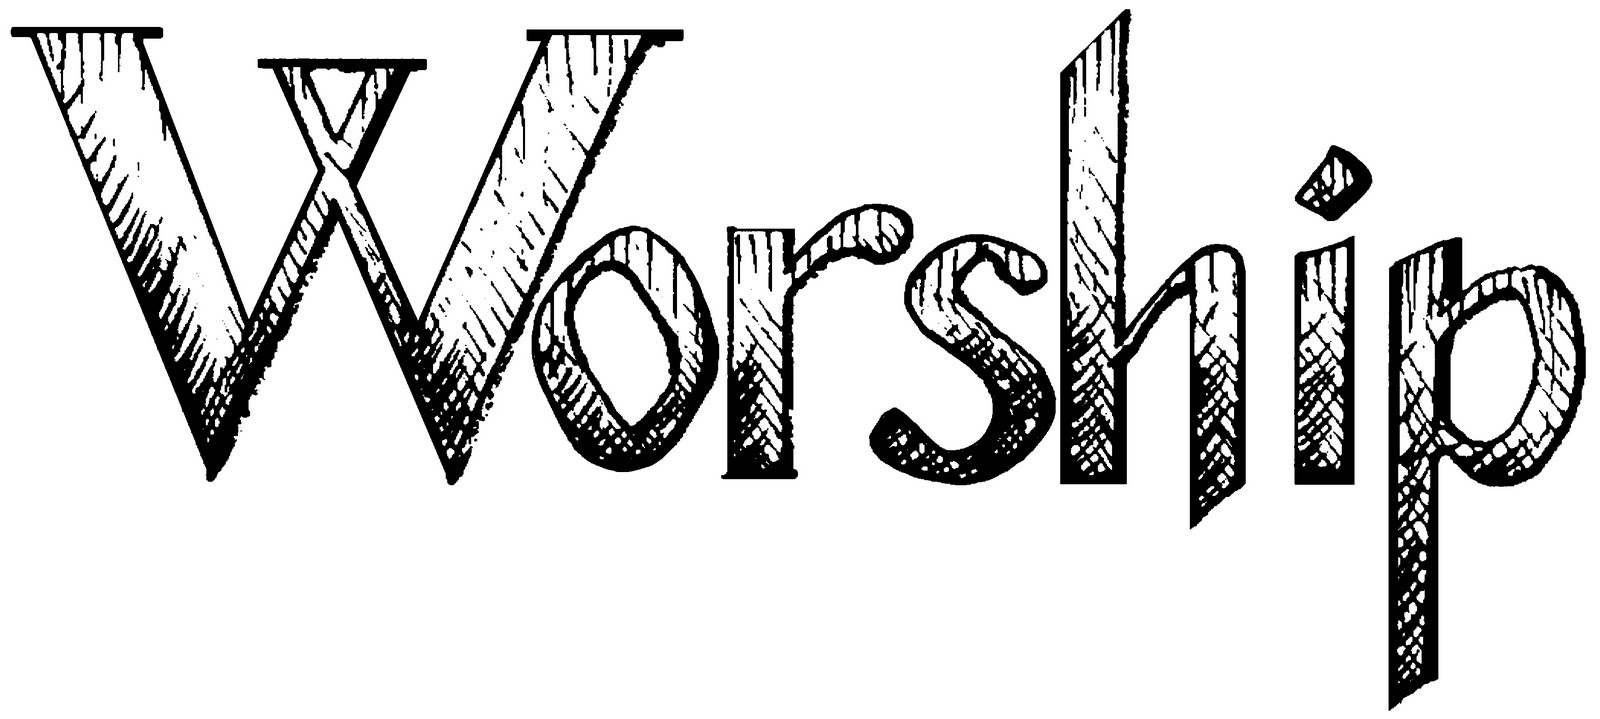 free christian praise clipart - photo #11